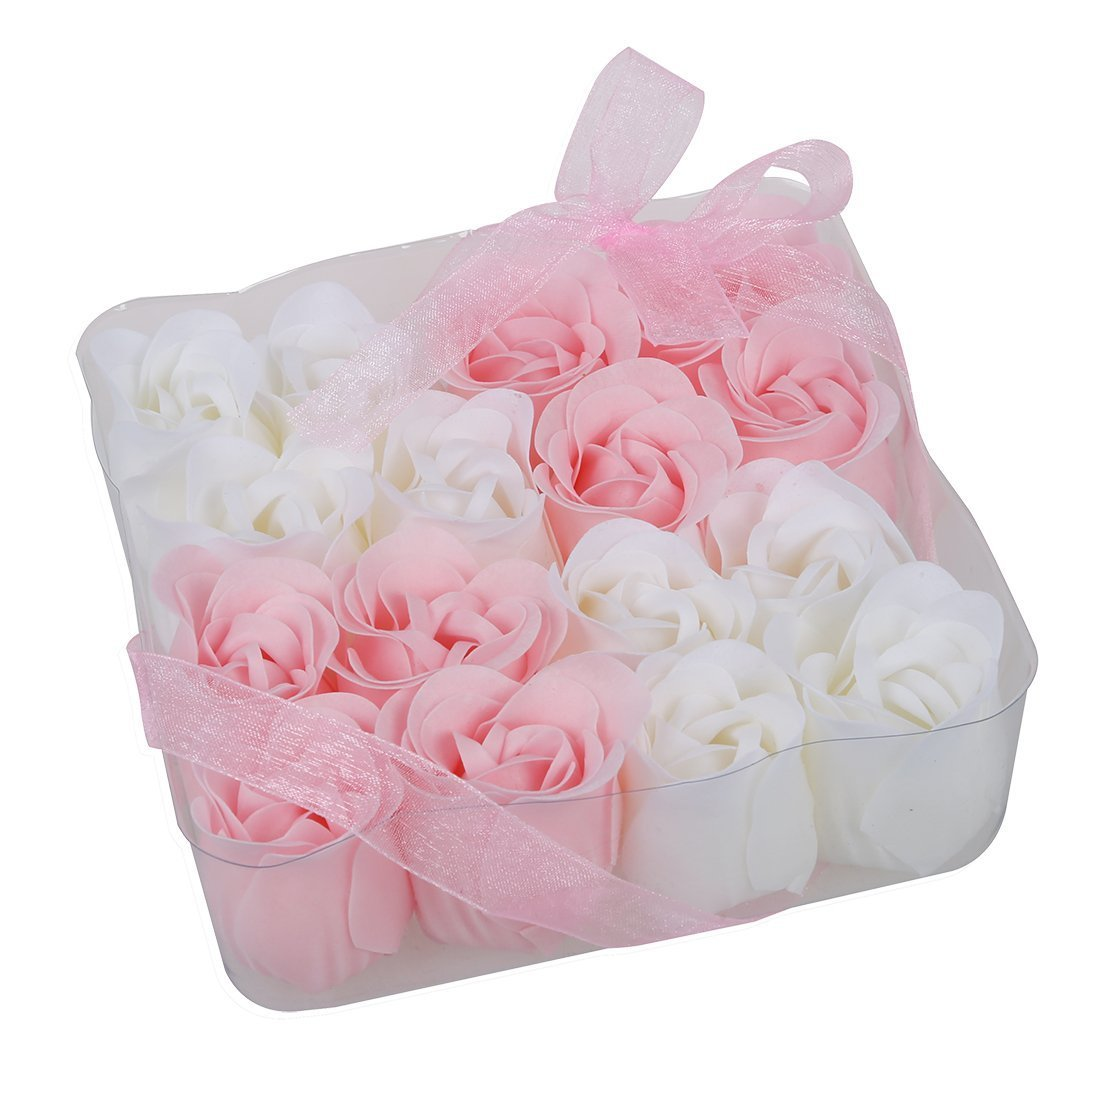 16 Pcs Pink White Bathing Scented Rose Soap Petals SODIAL(R) UKPPLBDH1019